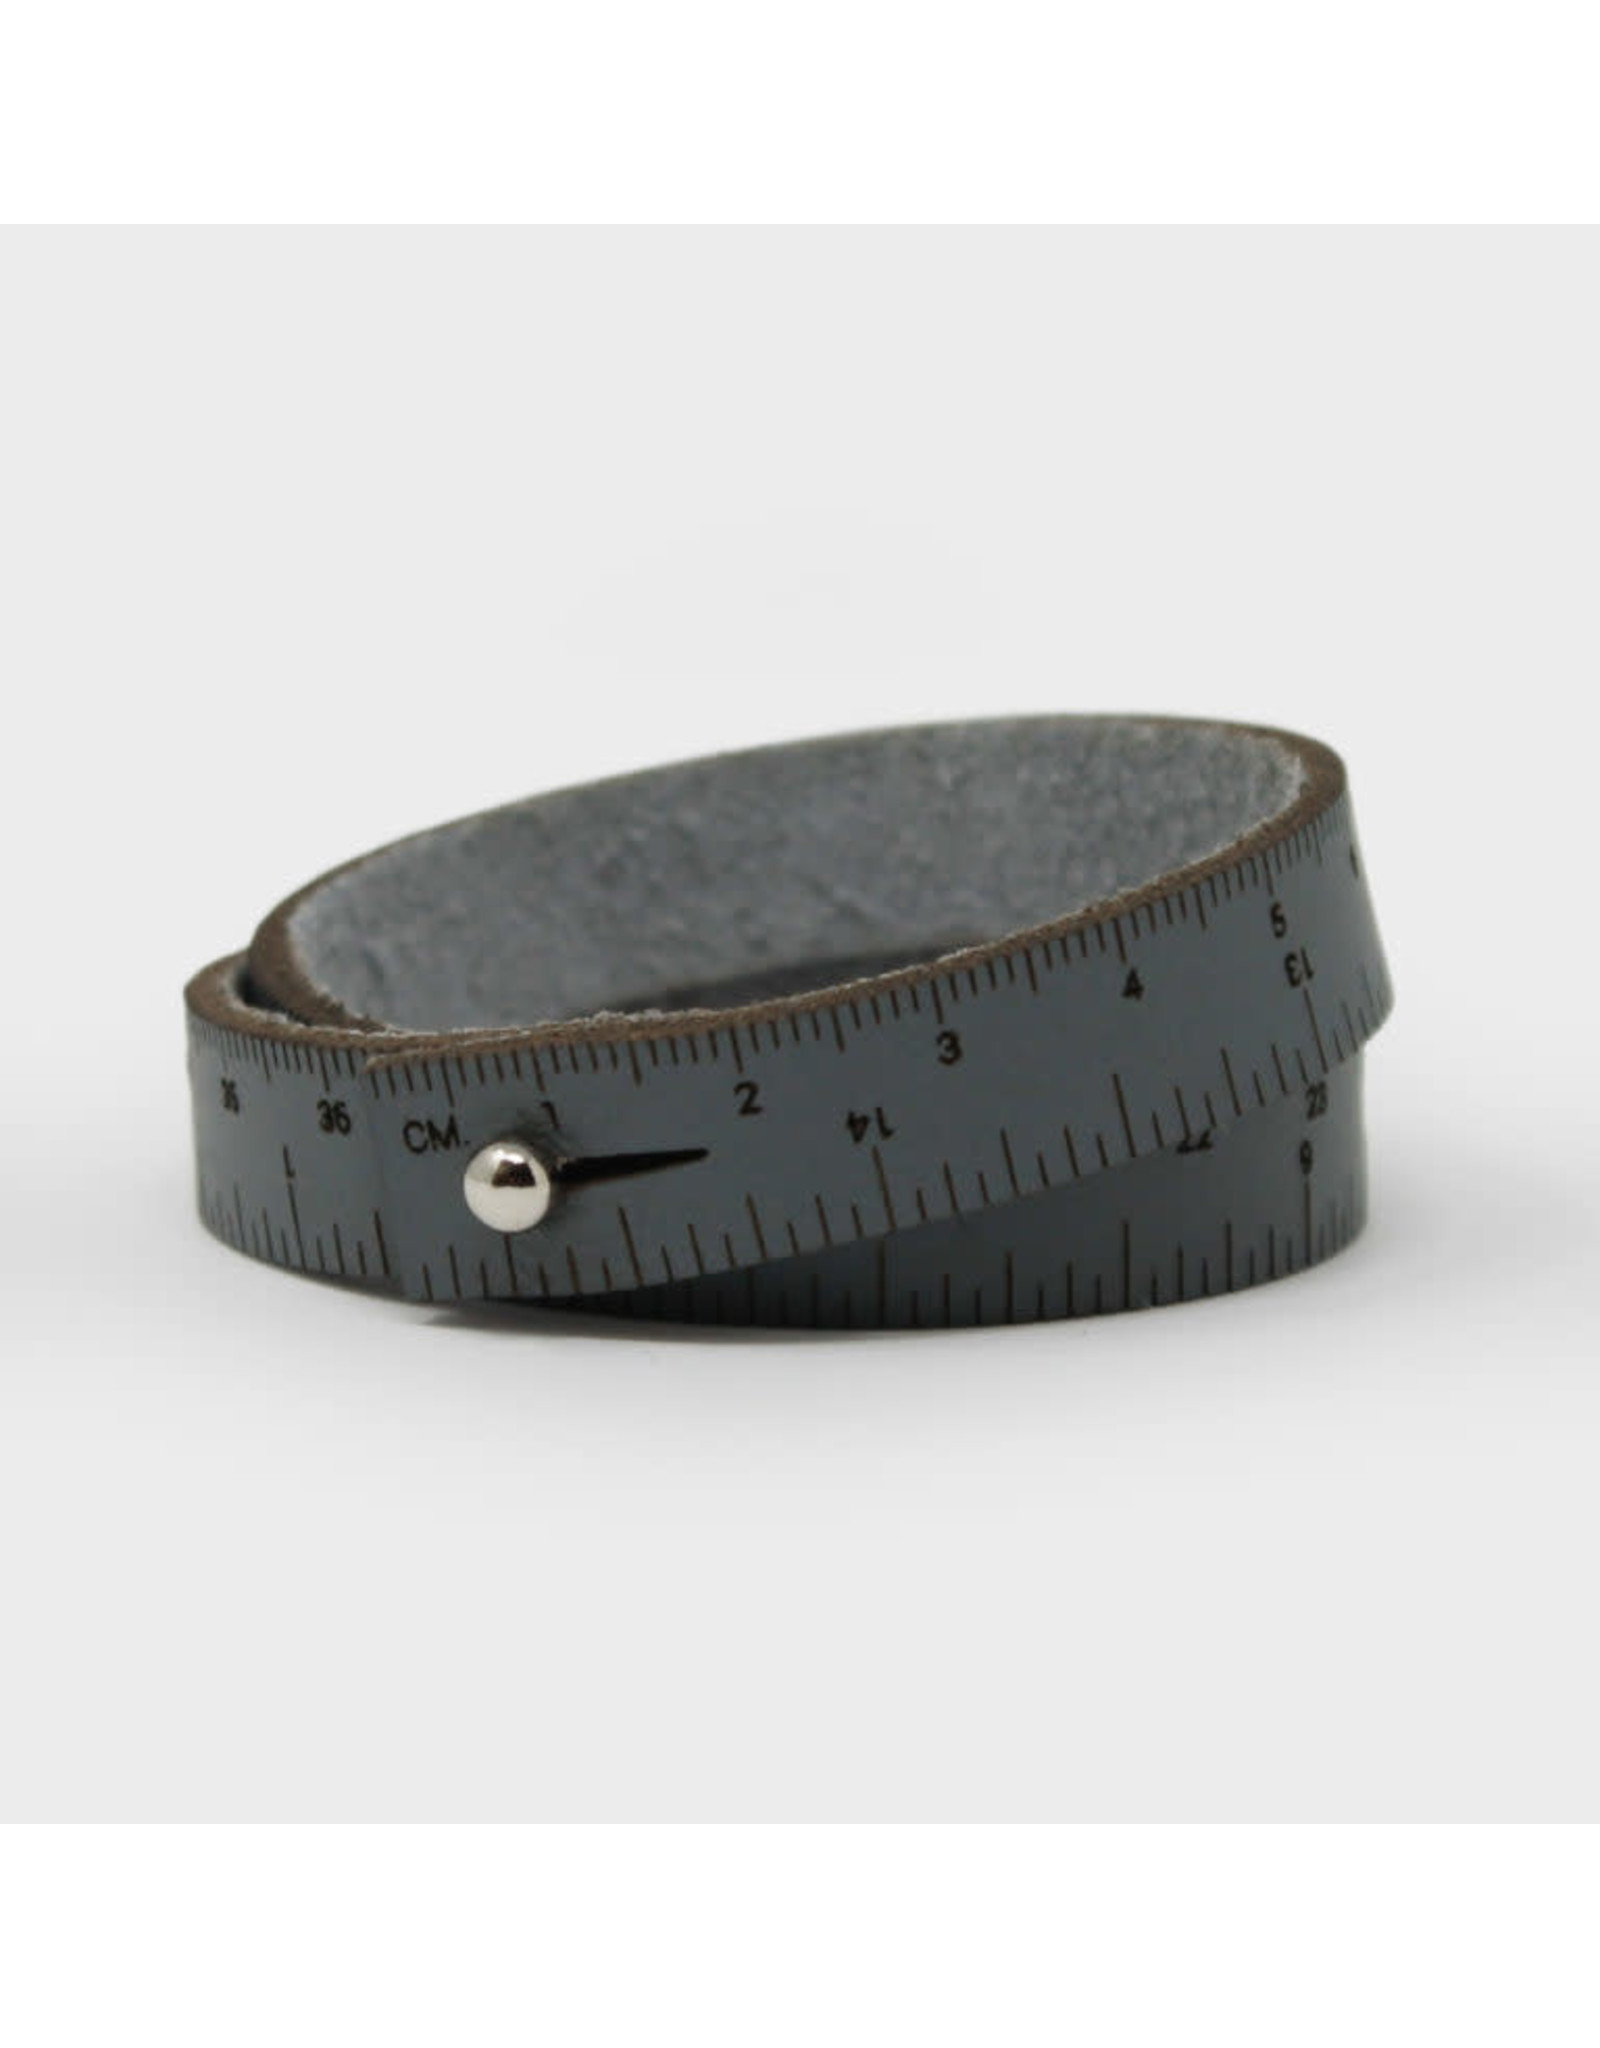 Wrist Ruler - GREY - 16 inches